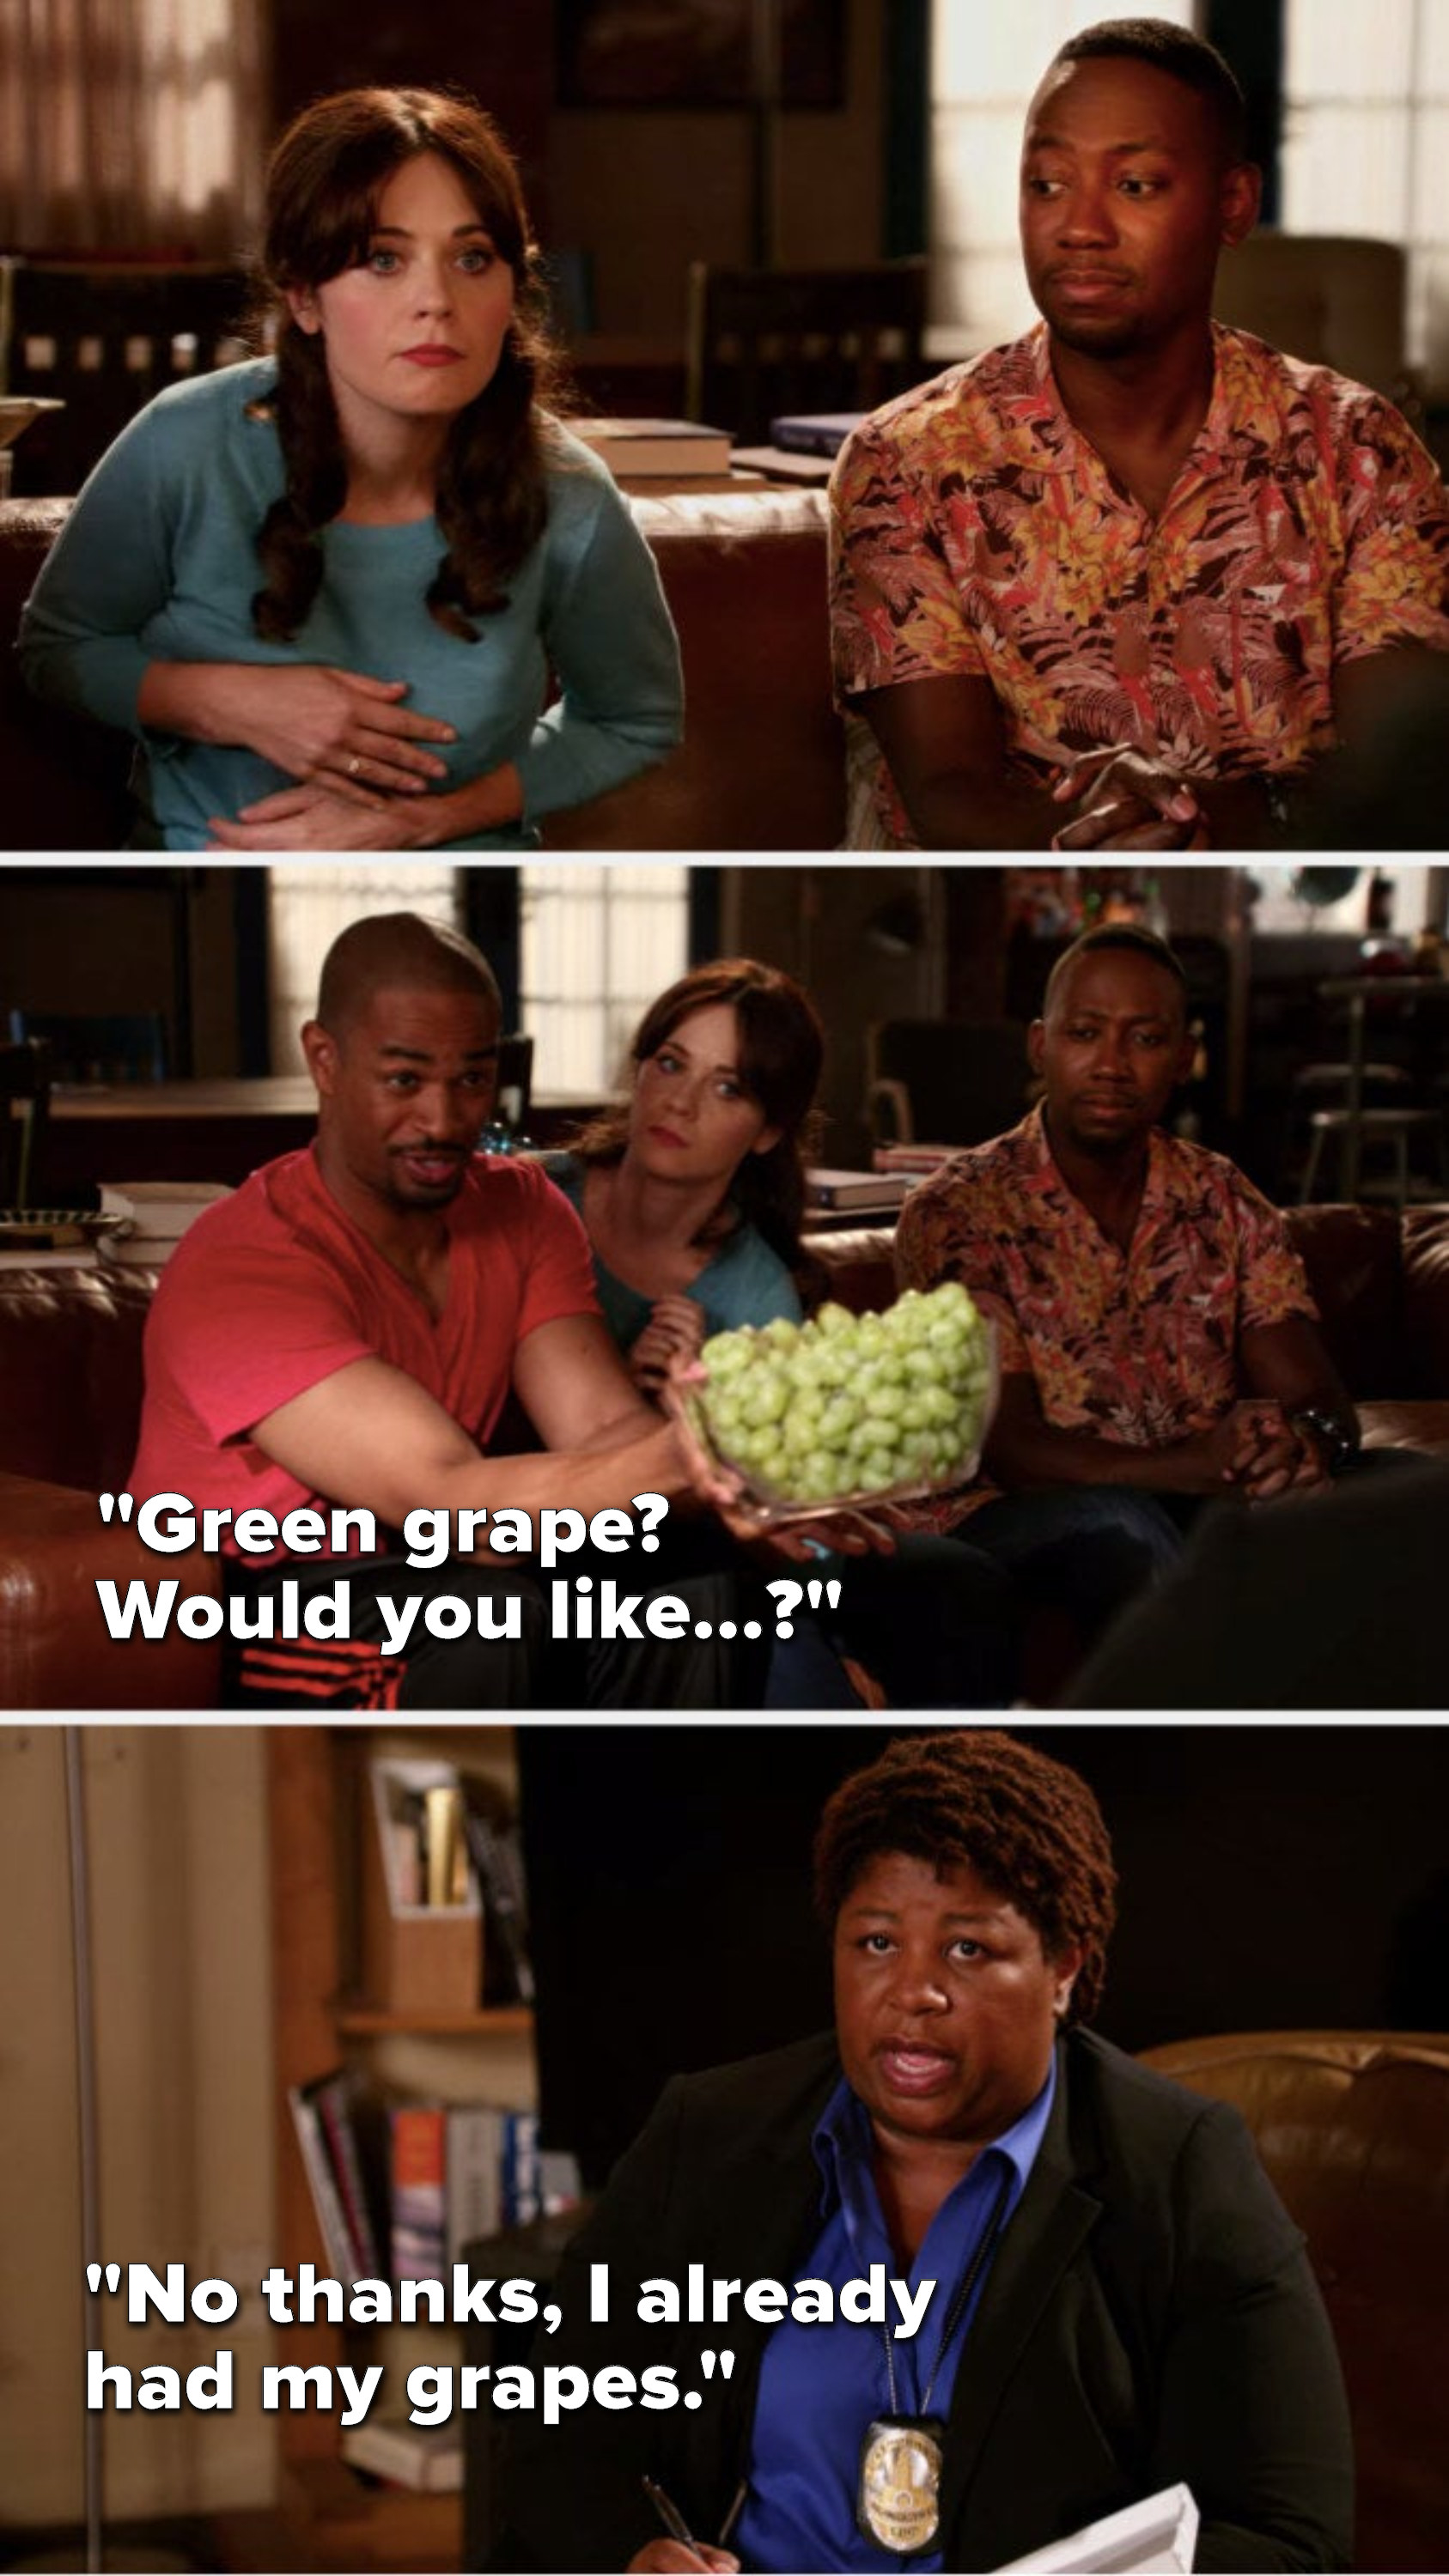 """Meth is Jess's bra falls, so Coach covers it up with grapes and says, """"Green grape, would you like...,"""" and Dorado says """"No thanks, I already had my grapes"""""""